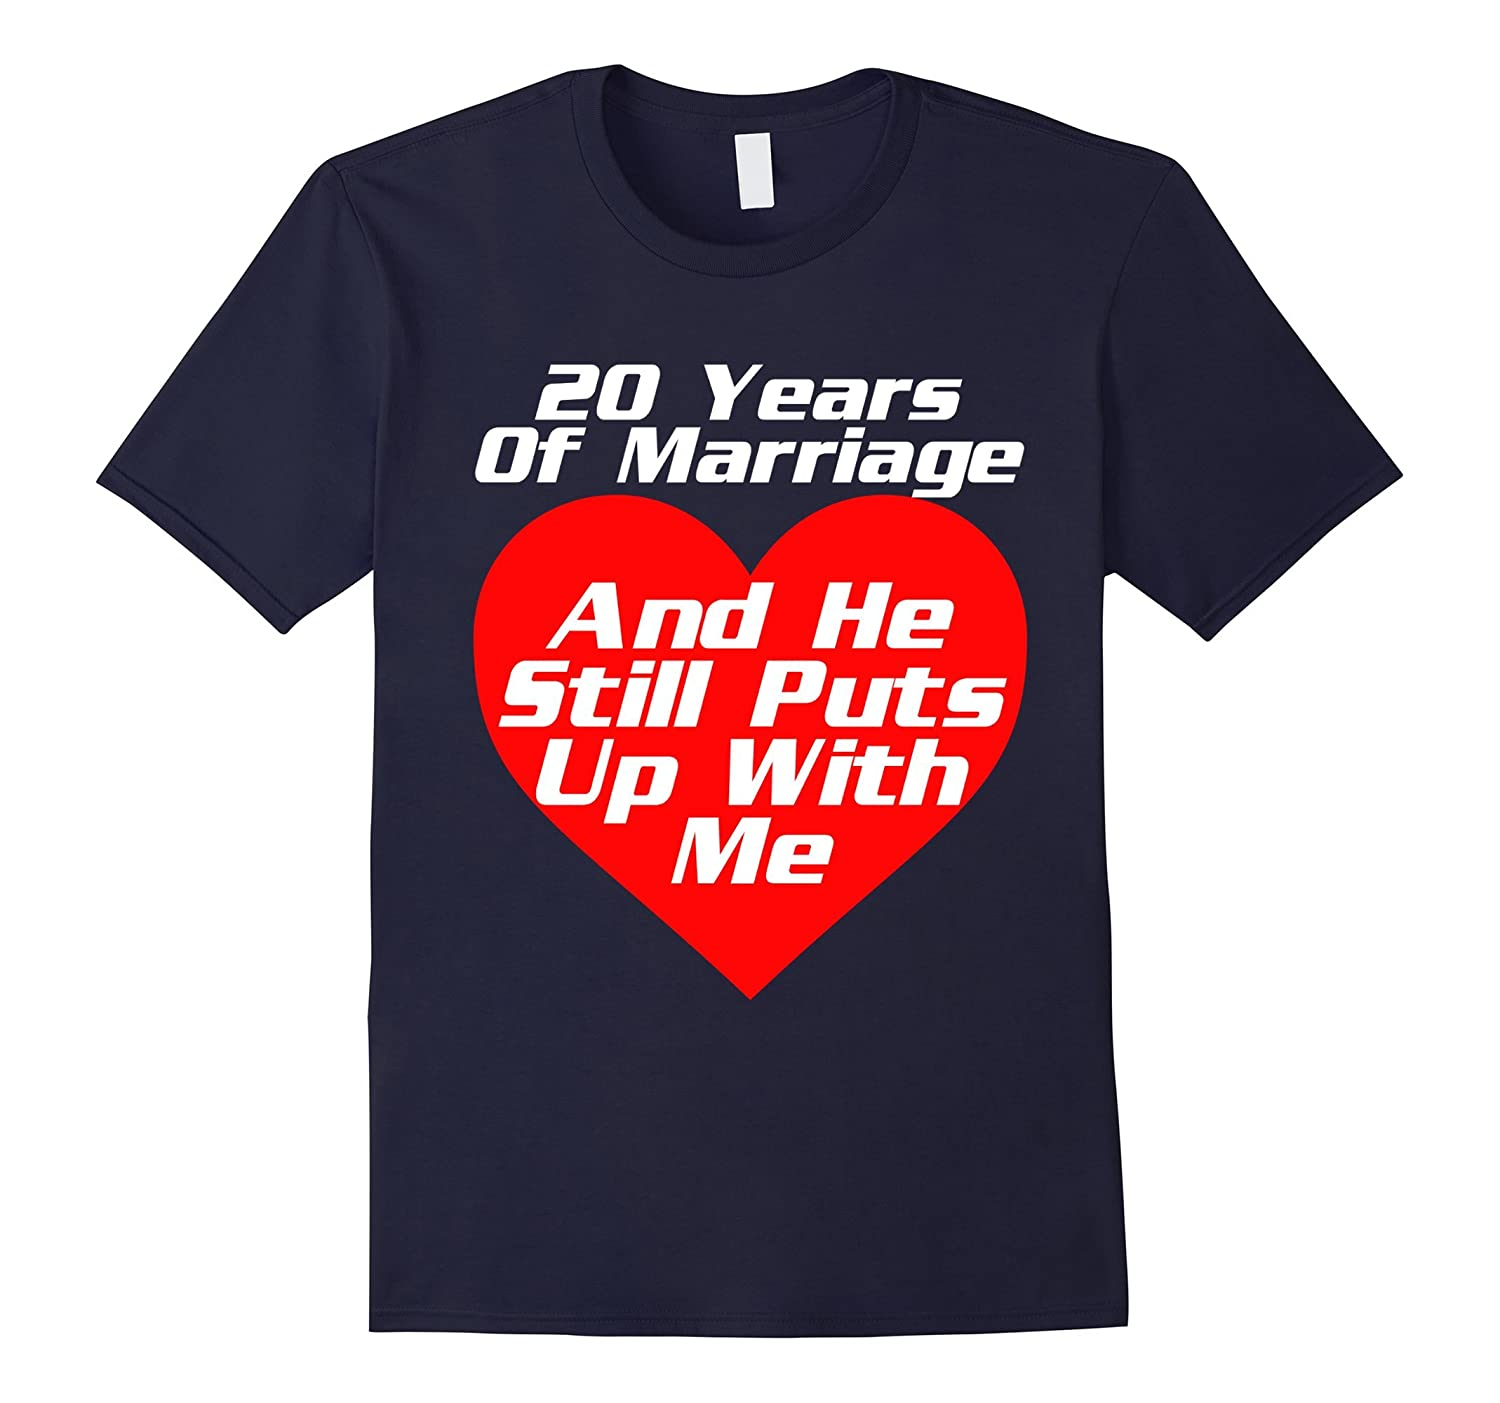 20 Years of Marriage He Still Puts Up With Me Tshirt Wedding-CD